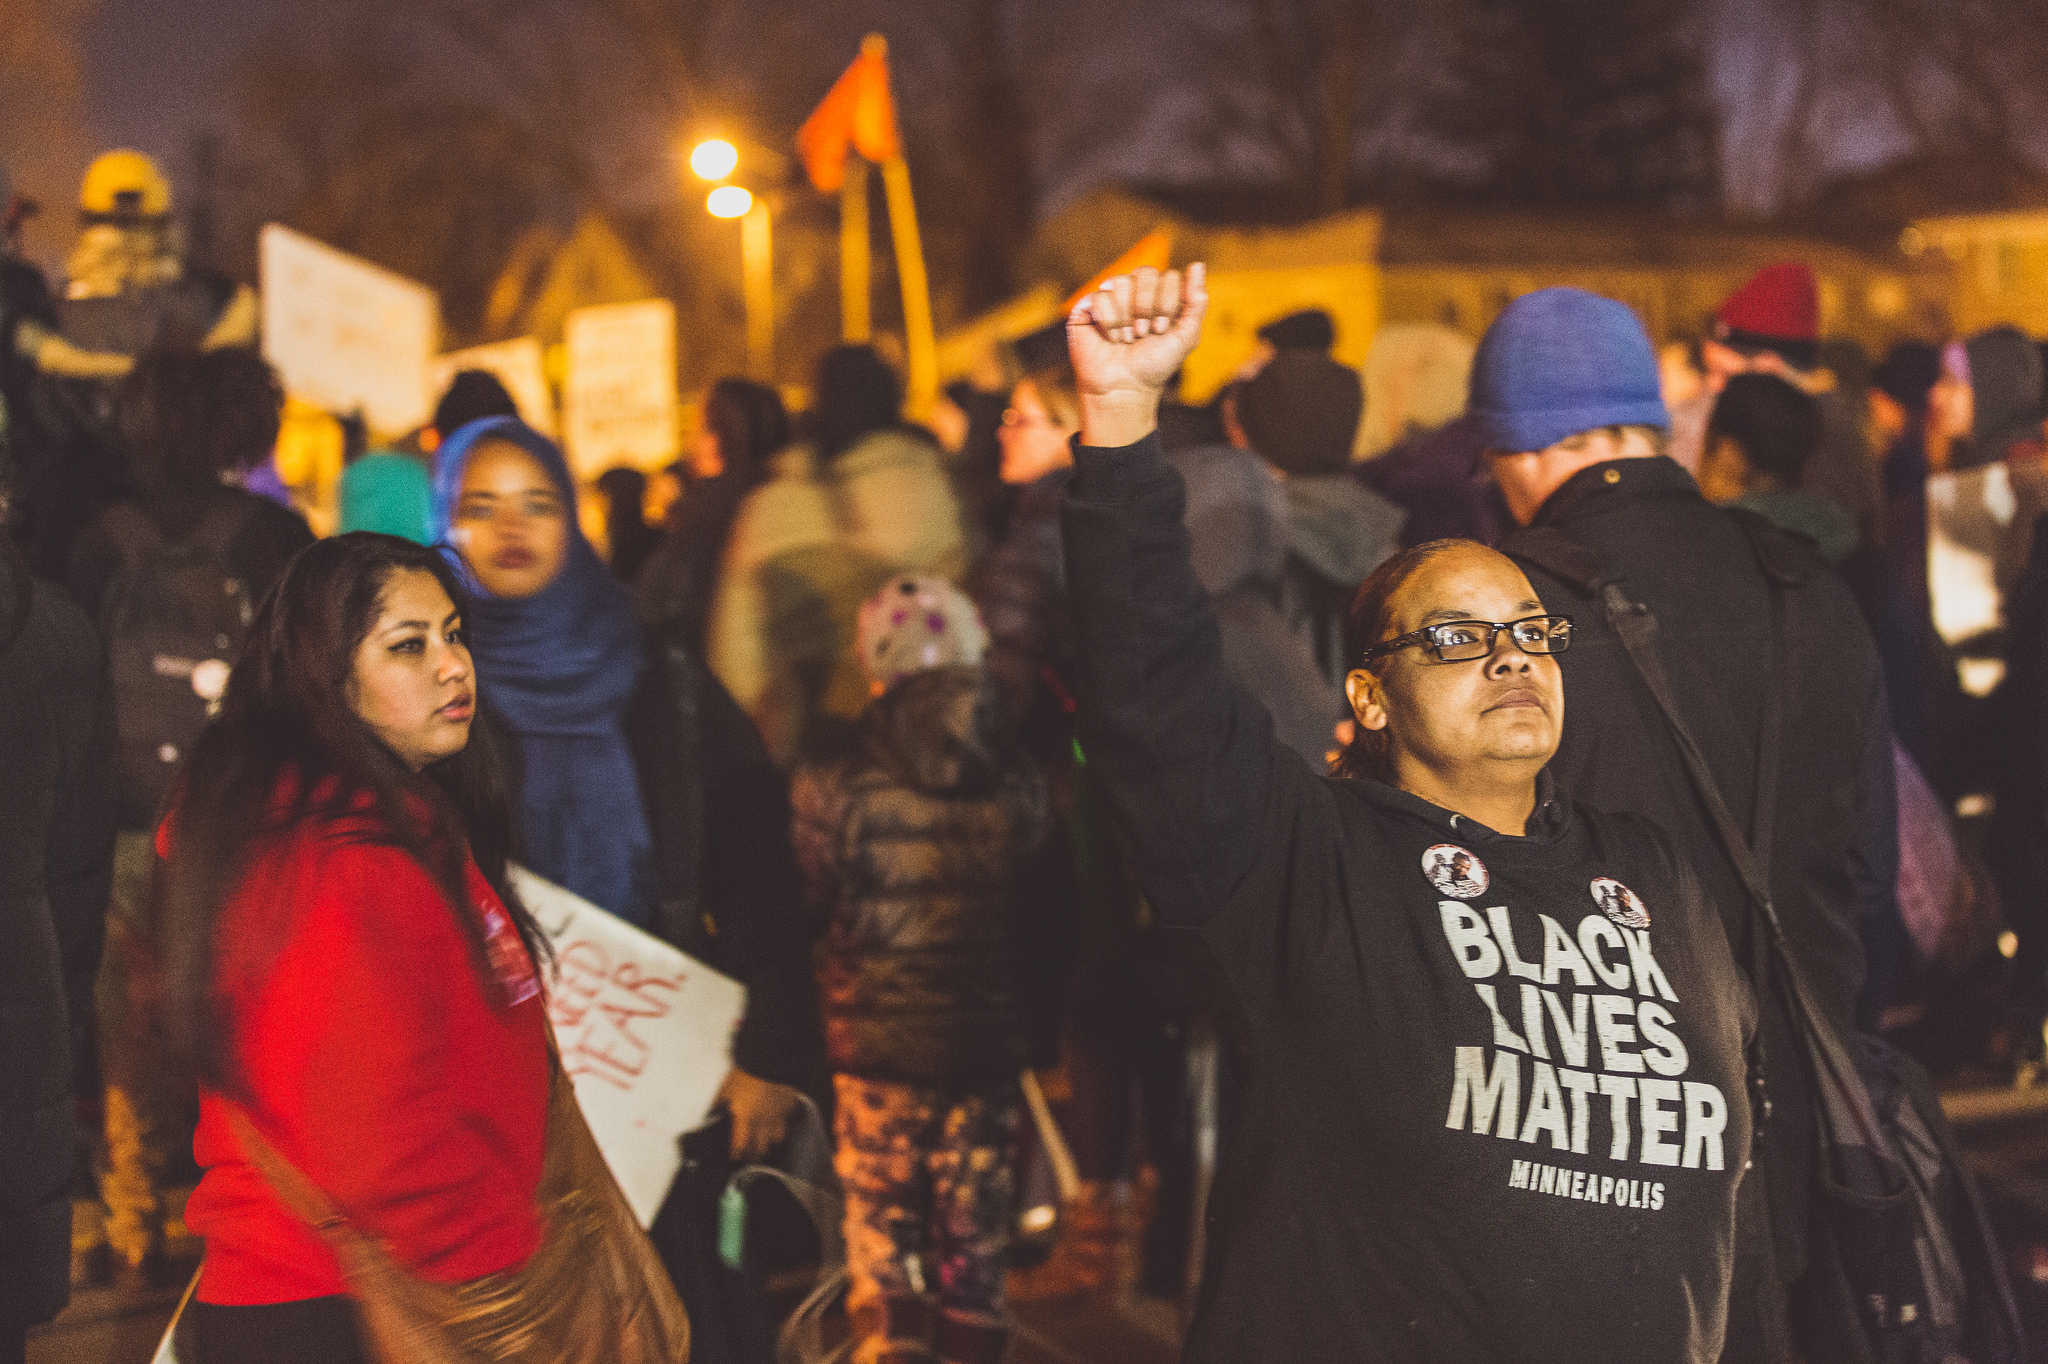 In front of a nighttime crowd, holding signs, a woman in a Black Lives Matter sweatshirt raises her fist into the air.